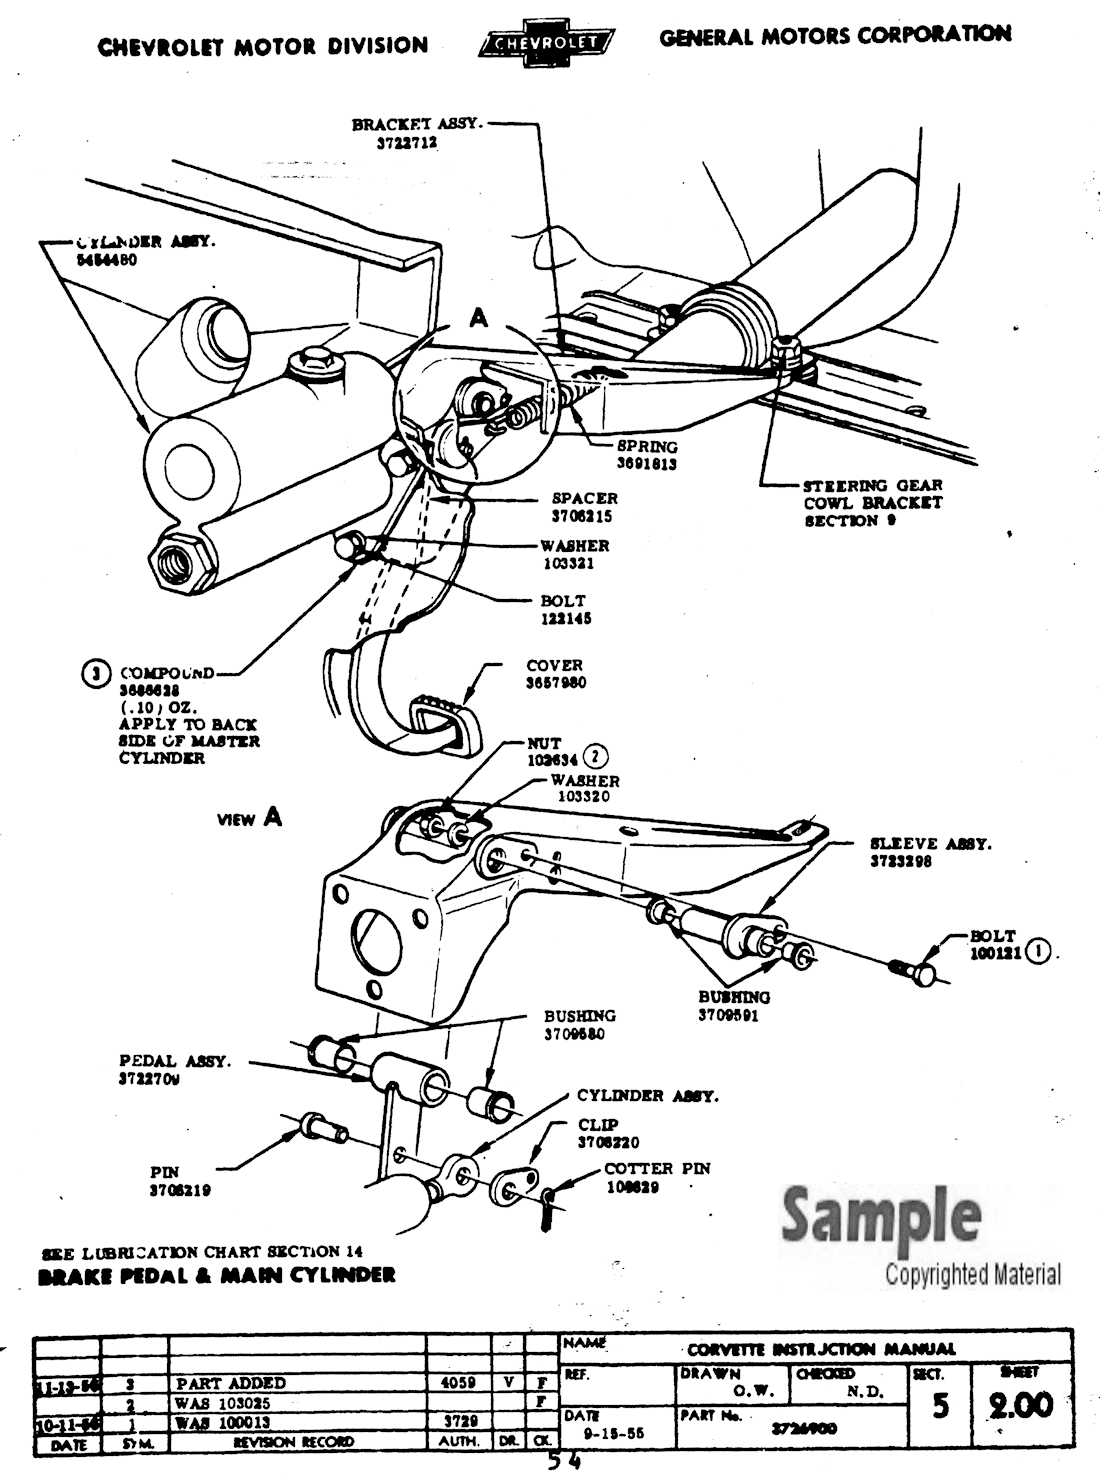 Chevy Diagrams 1969 Chevelle Wiring Diagram Figure 1965 Corvette Dash furthermore L240025 furthermore 33539 1967 Chevy Chevelle Ss 396 138 Vin Muncie 4 Speed Pdb Ps 12 Bolt Super Sport furthermore 1956 1957 Chevy Corvette Factory Assembly Manual as well 1409 How To Install A Modern Sound System 1967 Chevrolet Chevelle Ss. on 1969 malibu dash